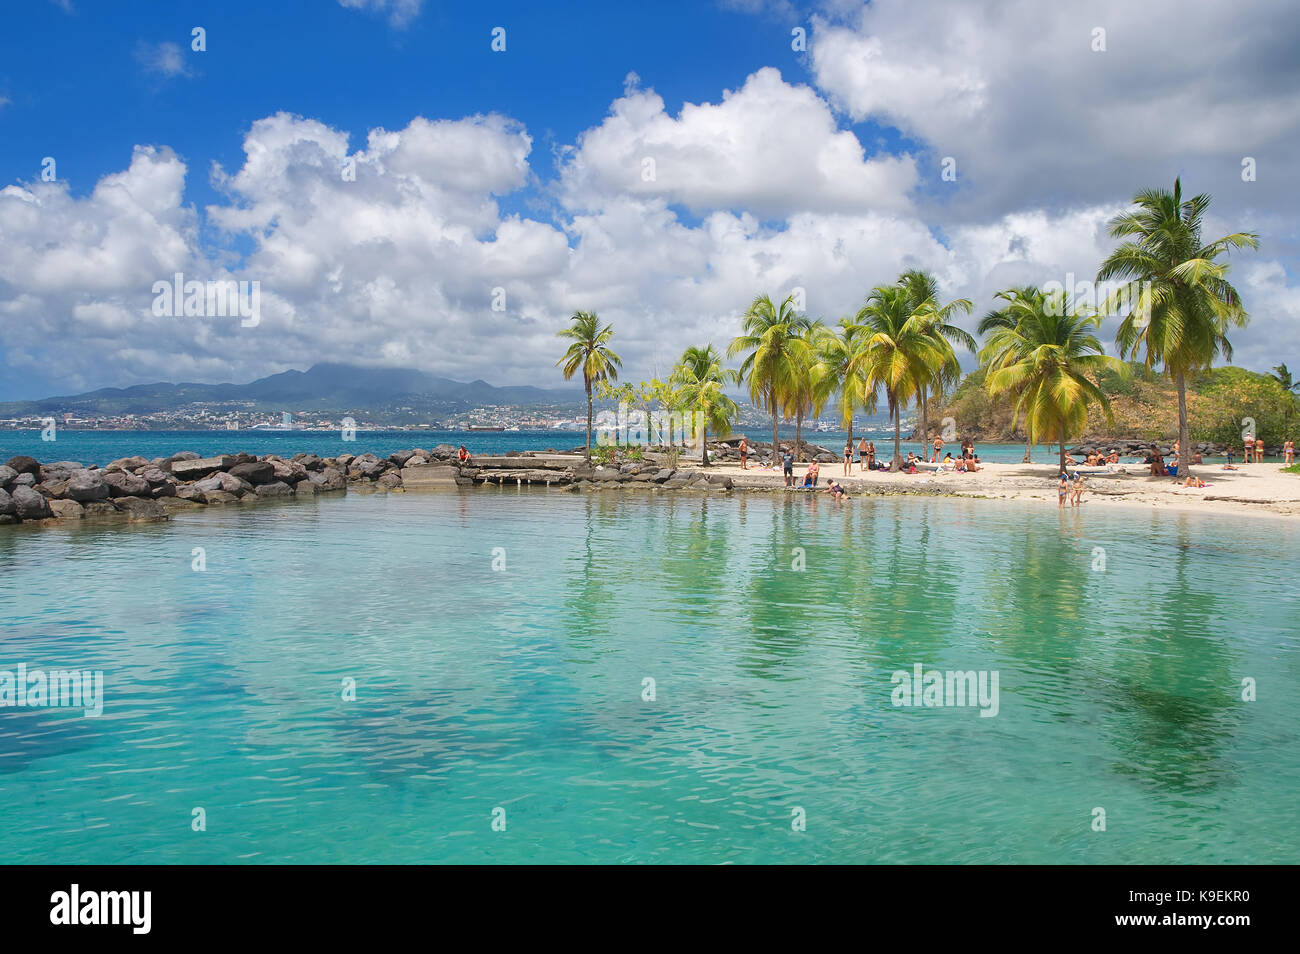 Anse Mitan - Fort-de-France - Martinique - Tropical island of Caribbean sea - Stock Image